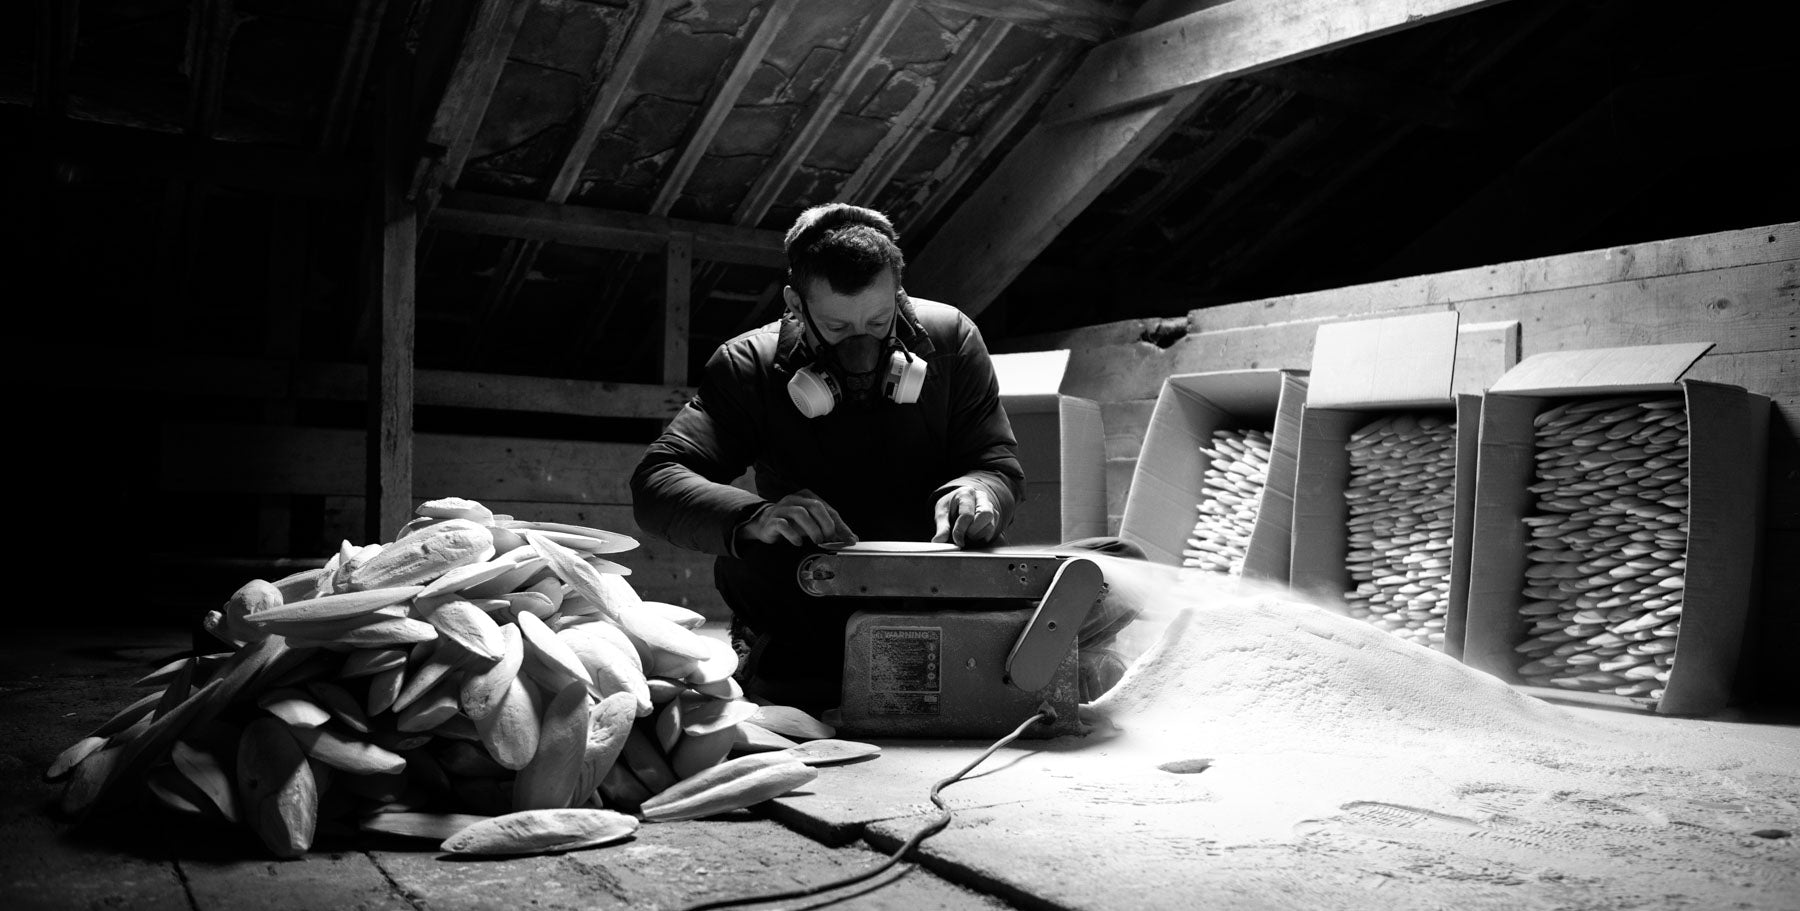 Alastair Mackie working in his Barn